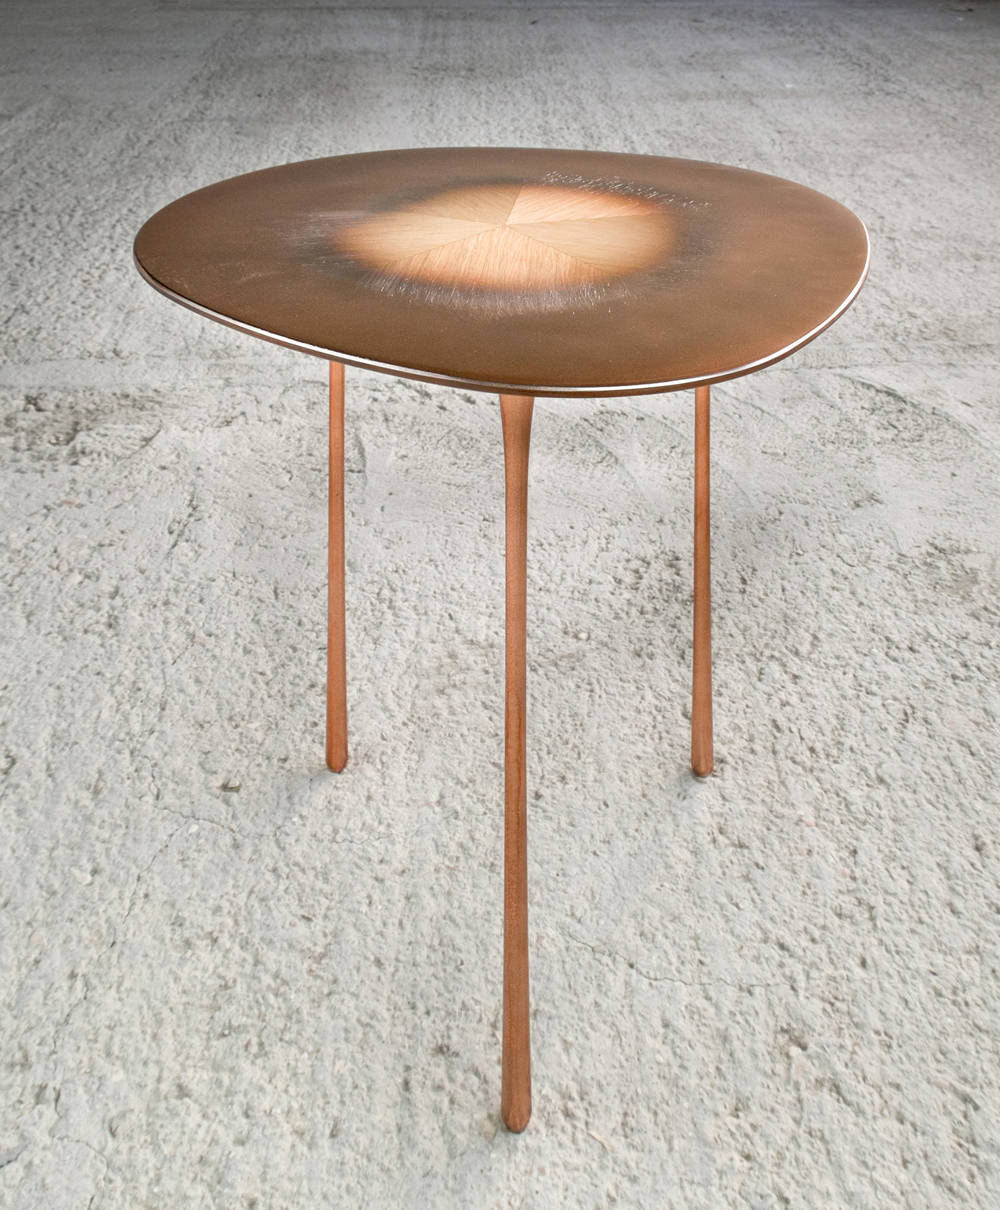 Echo Table Collection by UUfie